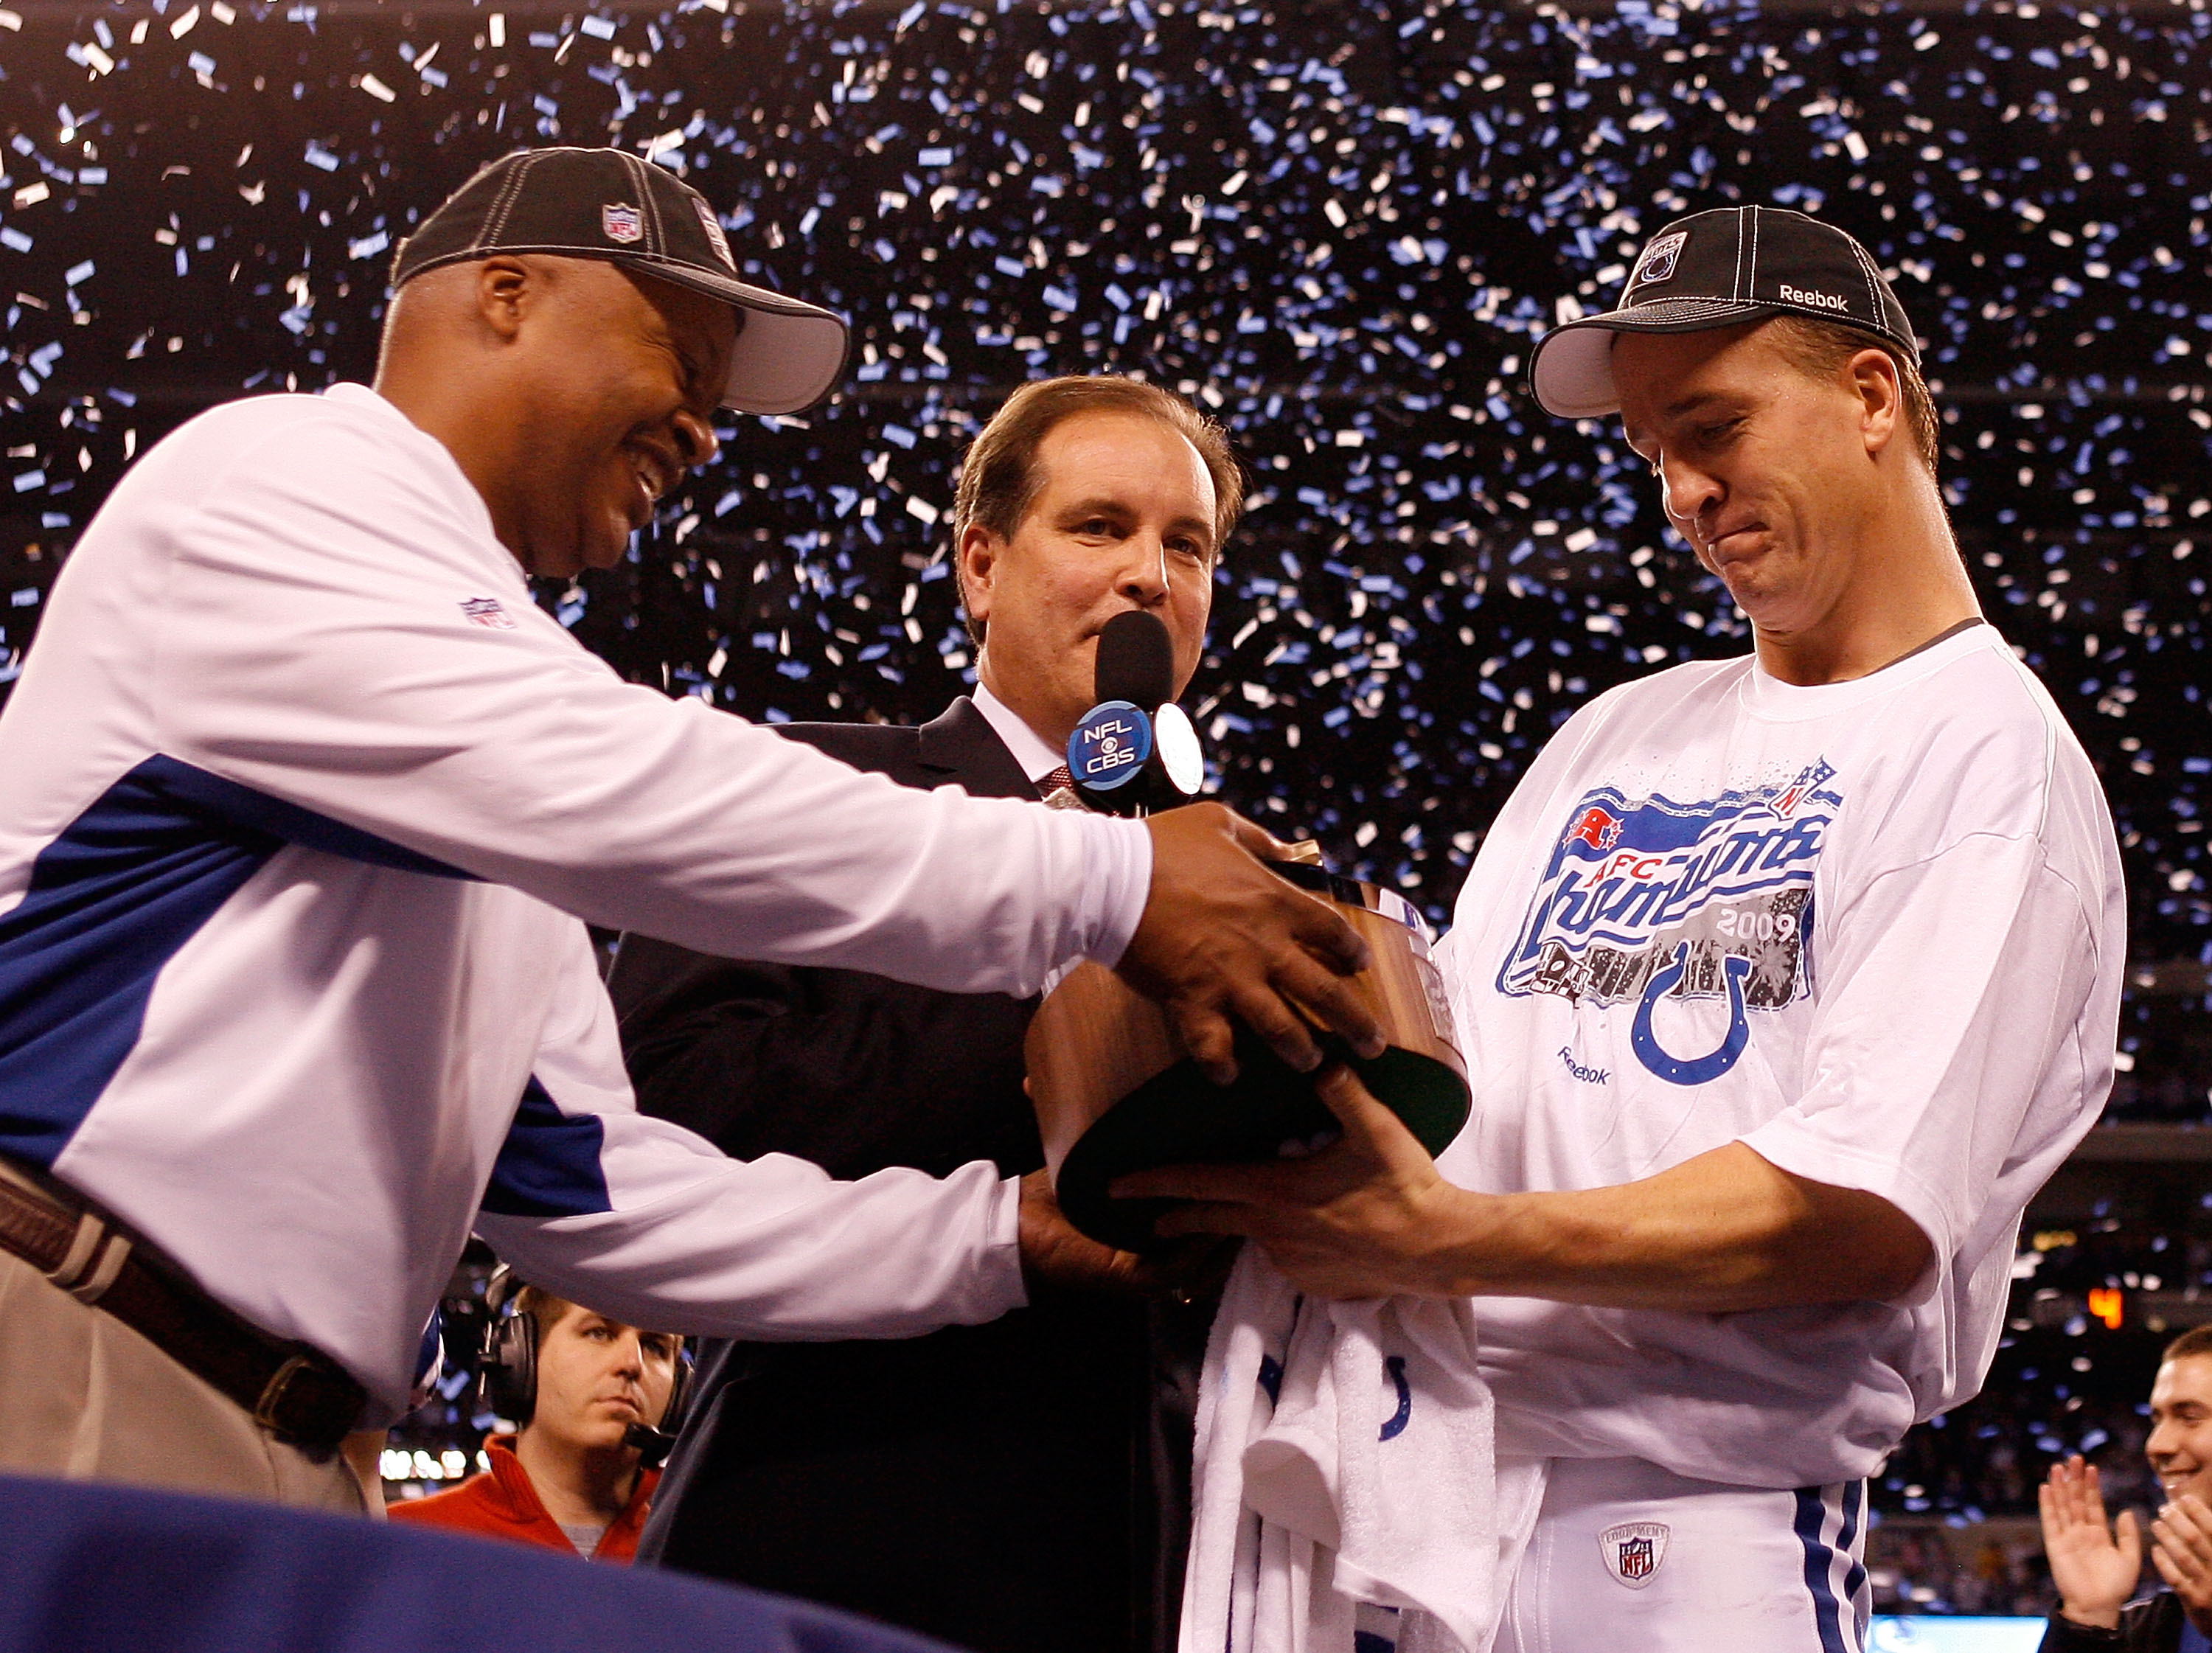 INDIANAPOLIS - JANUARY 24:  Head coach Jim Caldwell hands quarterback Peyton Manning #18 of the Indianapolis Colts the Lamar Hunt trophy after the Colts defeated the New York Jets 30-17 to win the AFC Championship Game at Lucas Oil Stadium on January 24,